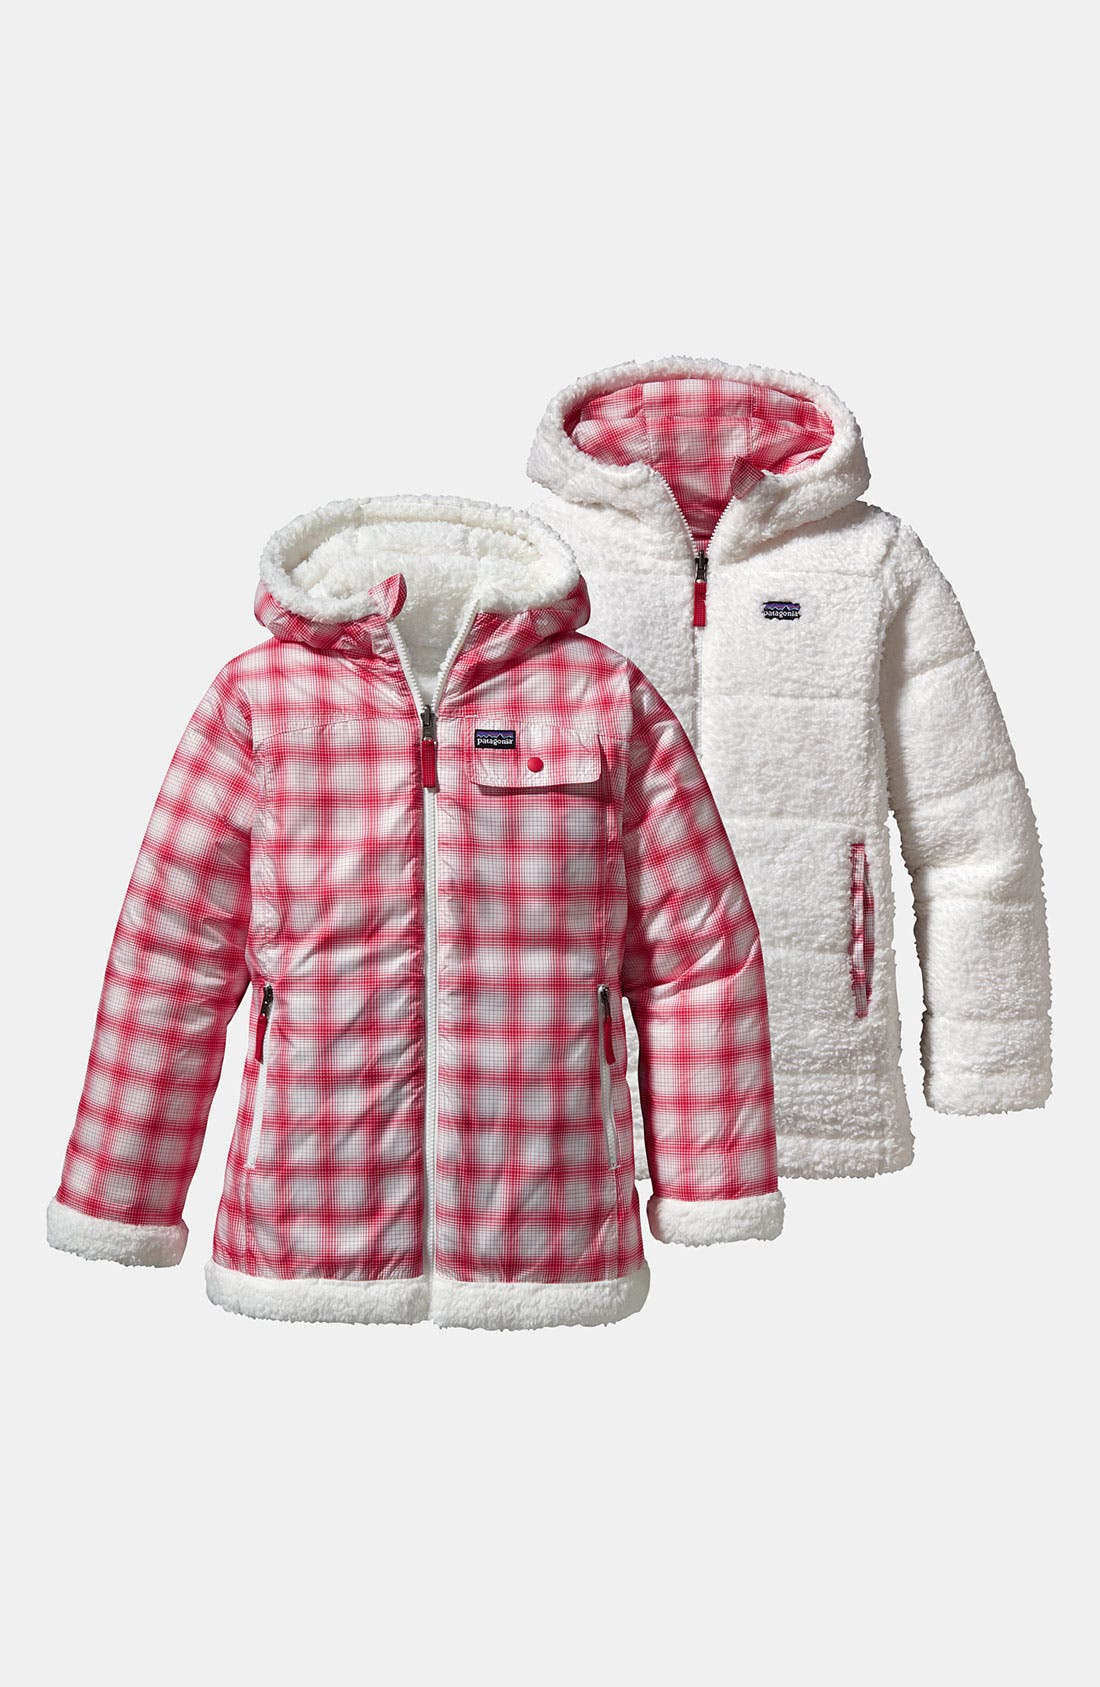 Alternate Image 1 Selected - Patagonia 'Dynamite Duo' Jacket (Little Girls & Big Girls)